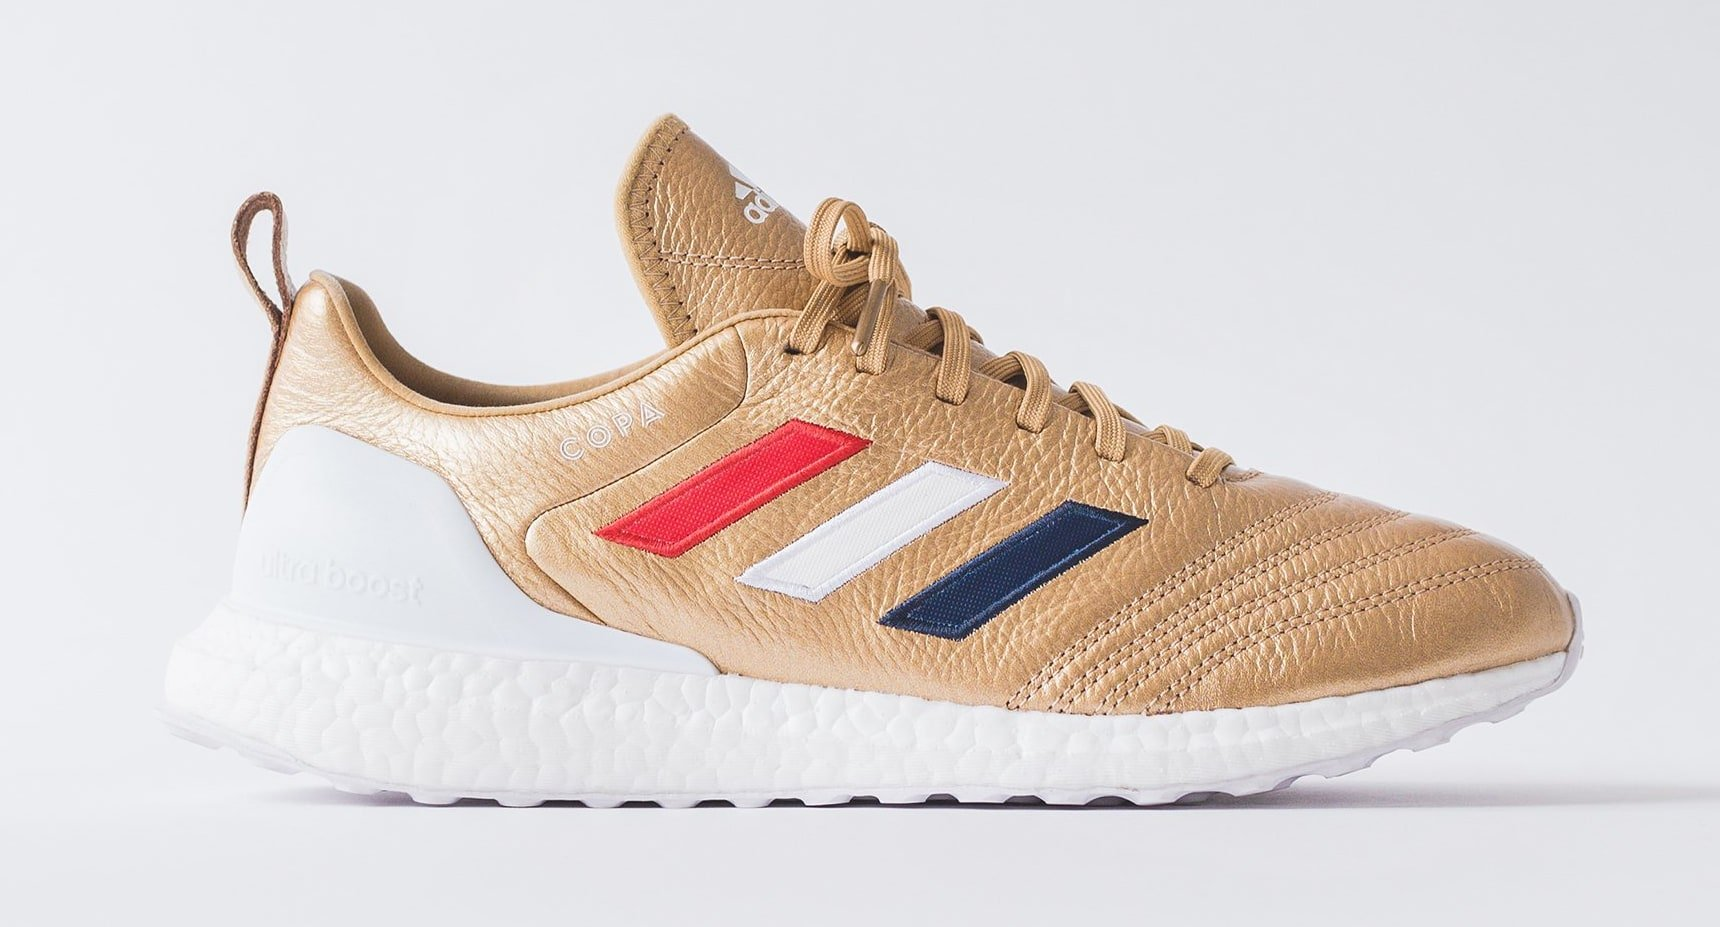 kith-adidas-soccer-copa-mundial-18-ultra-boost-release-20180629